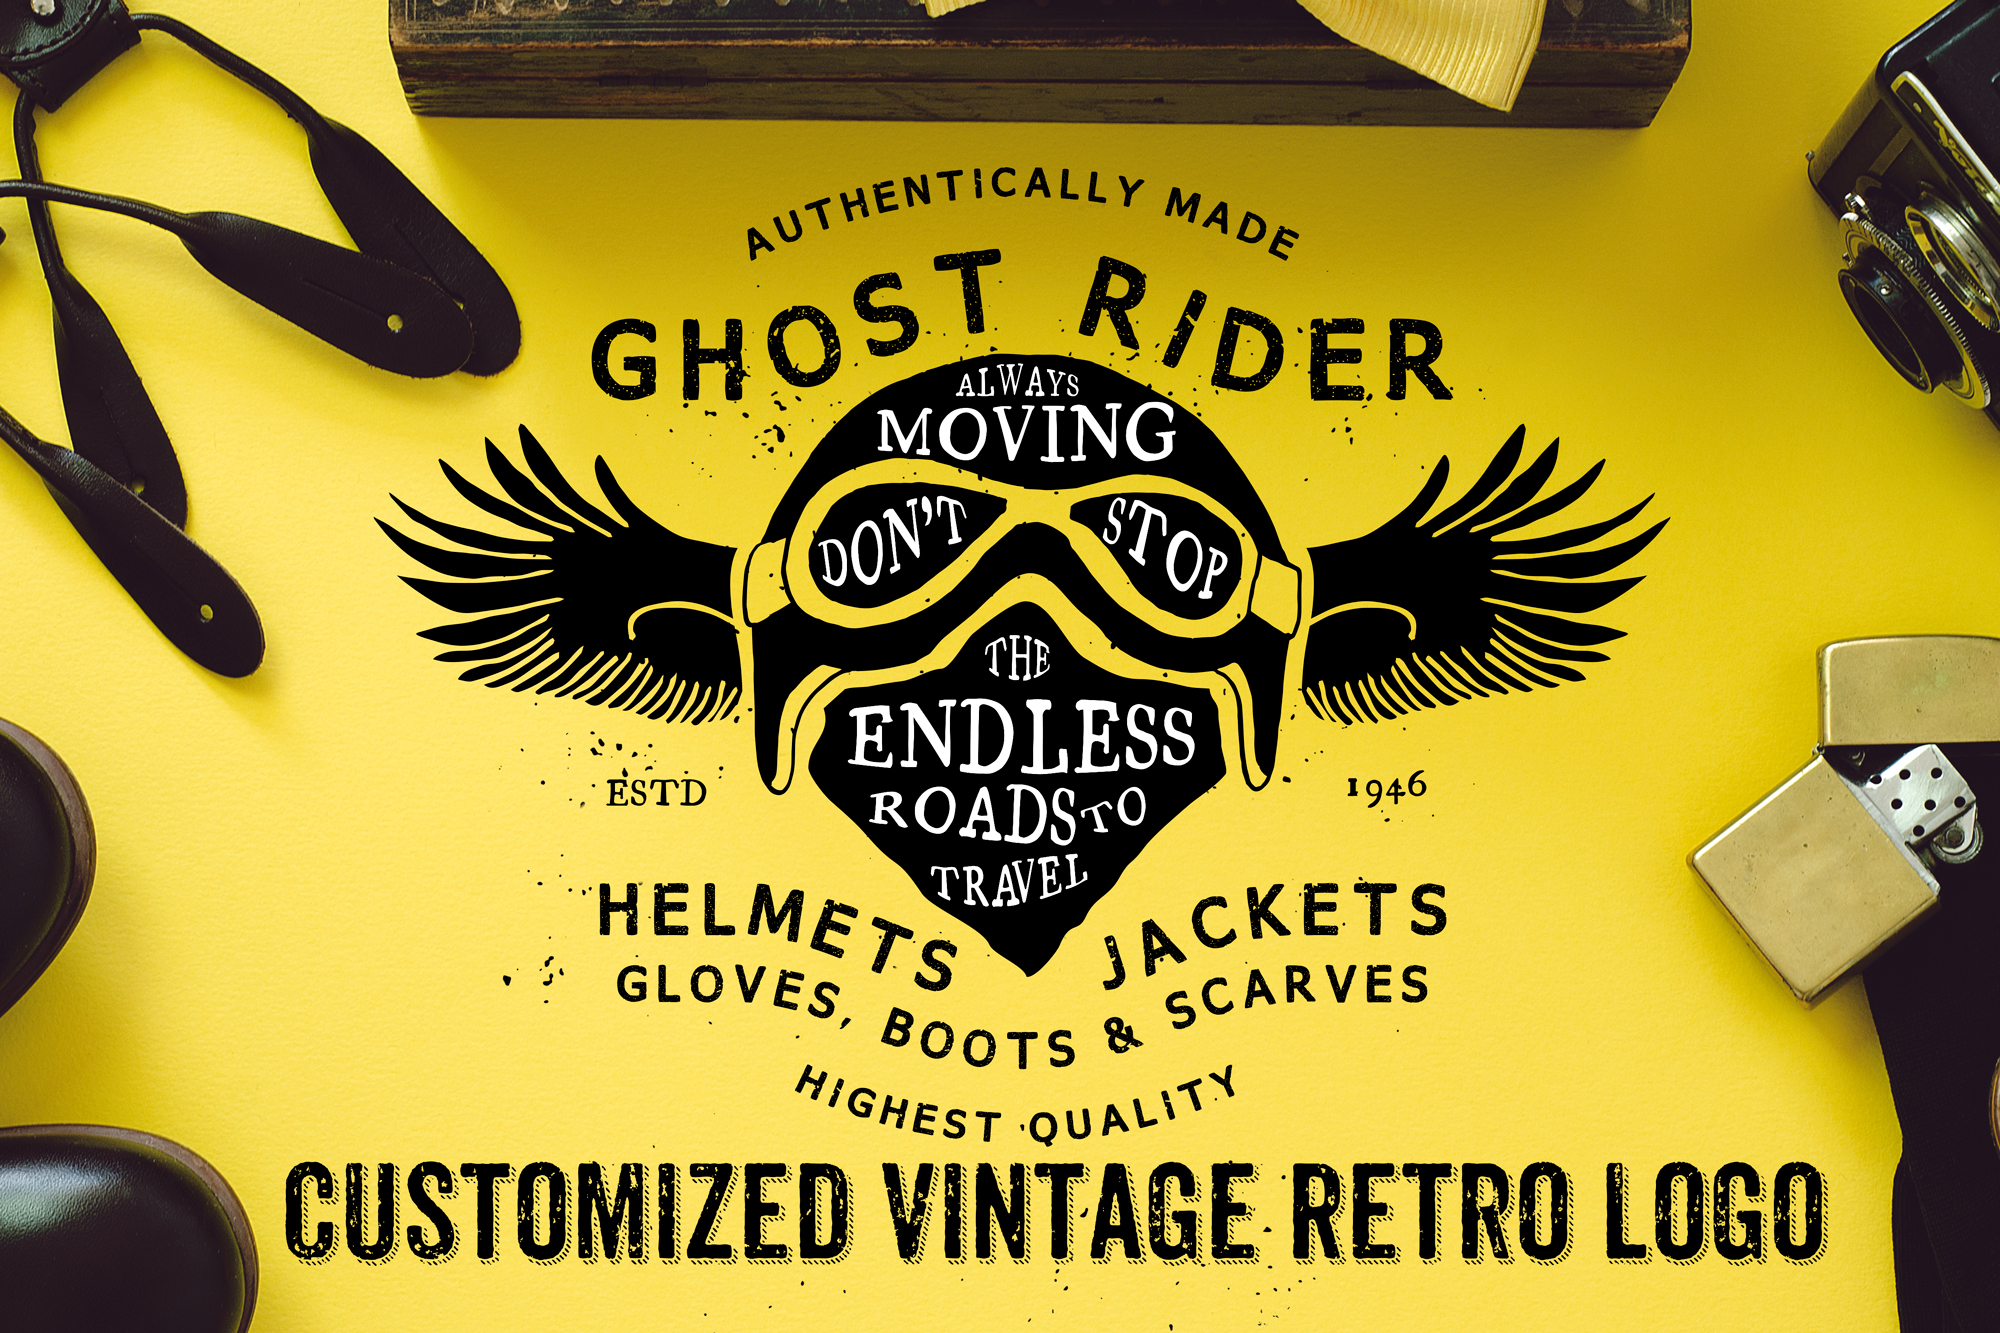 I will do 2 beautiful retro vintage logo with free vector files